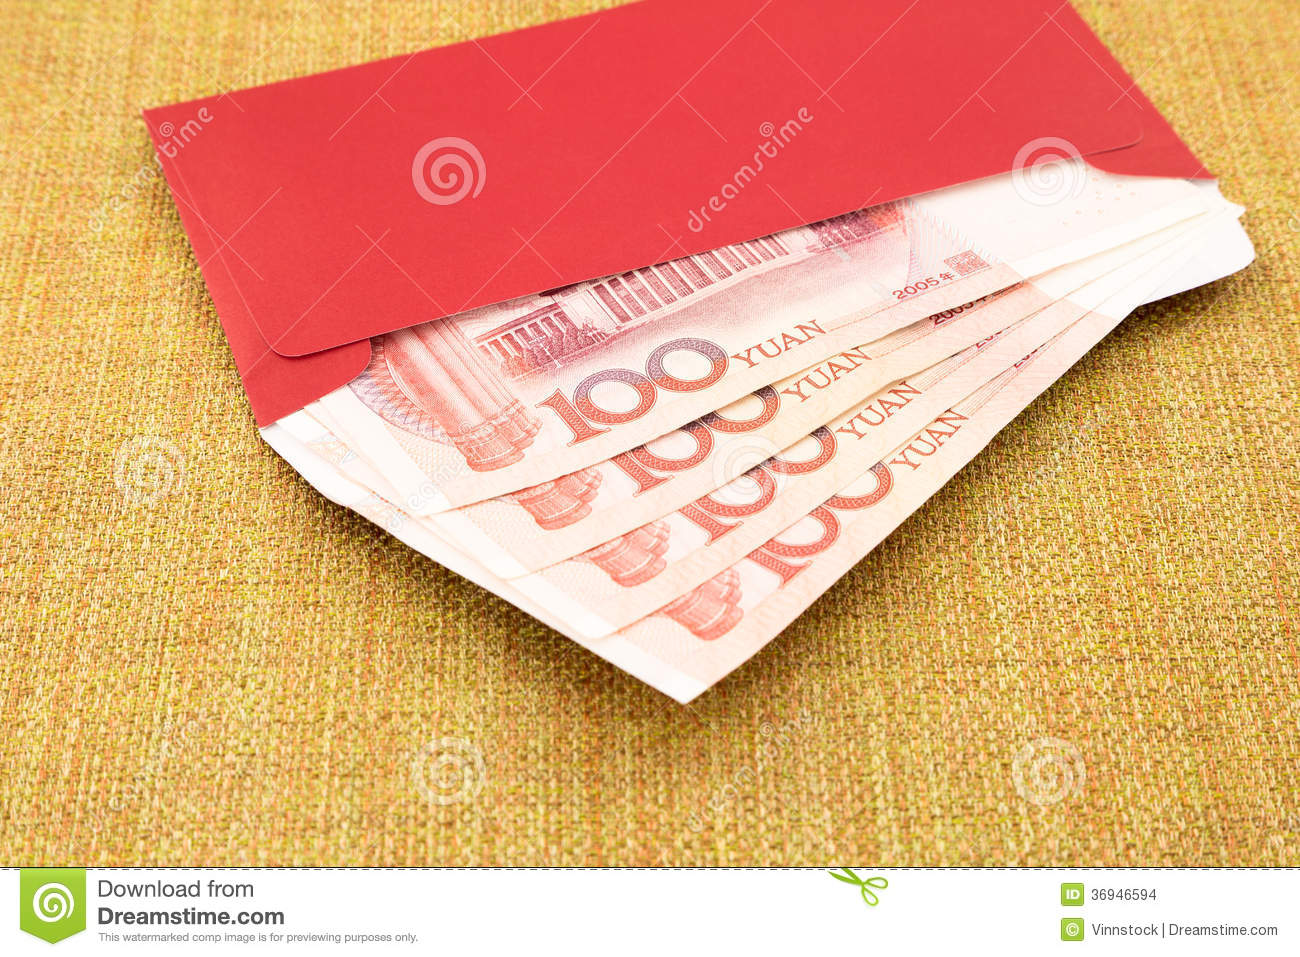 Yuan Banknote And Red Envelope Stock Photo - Image: 36946594